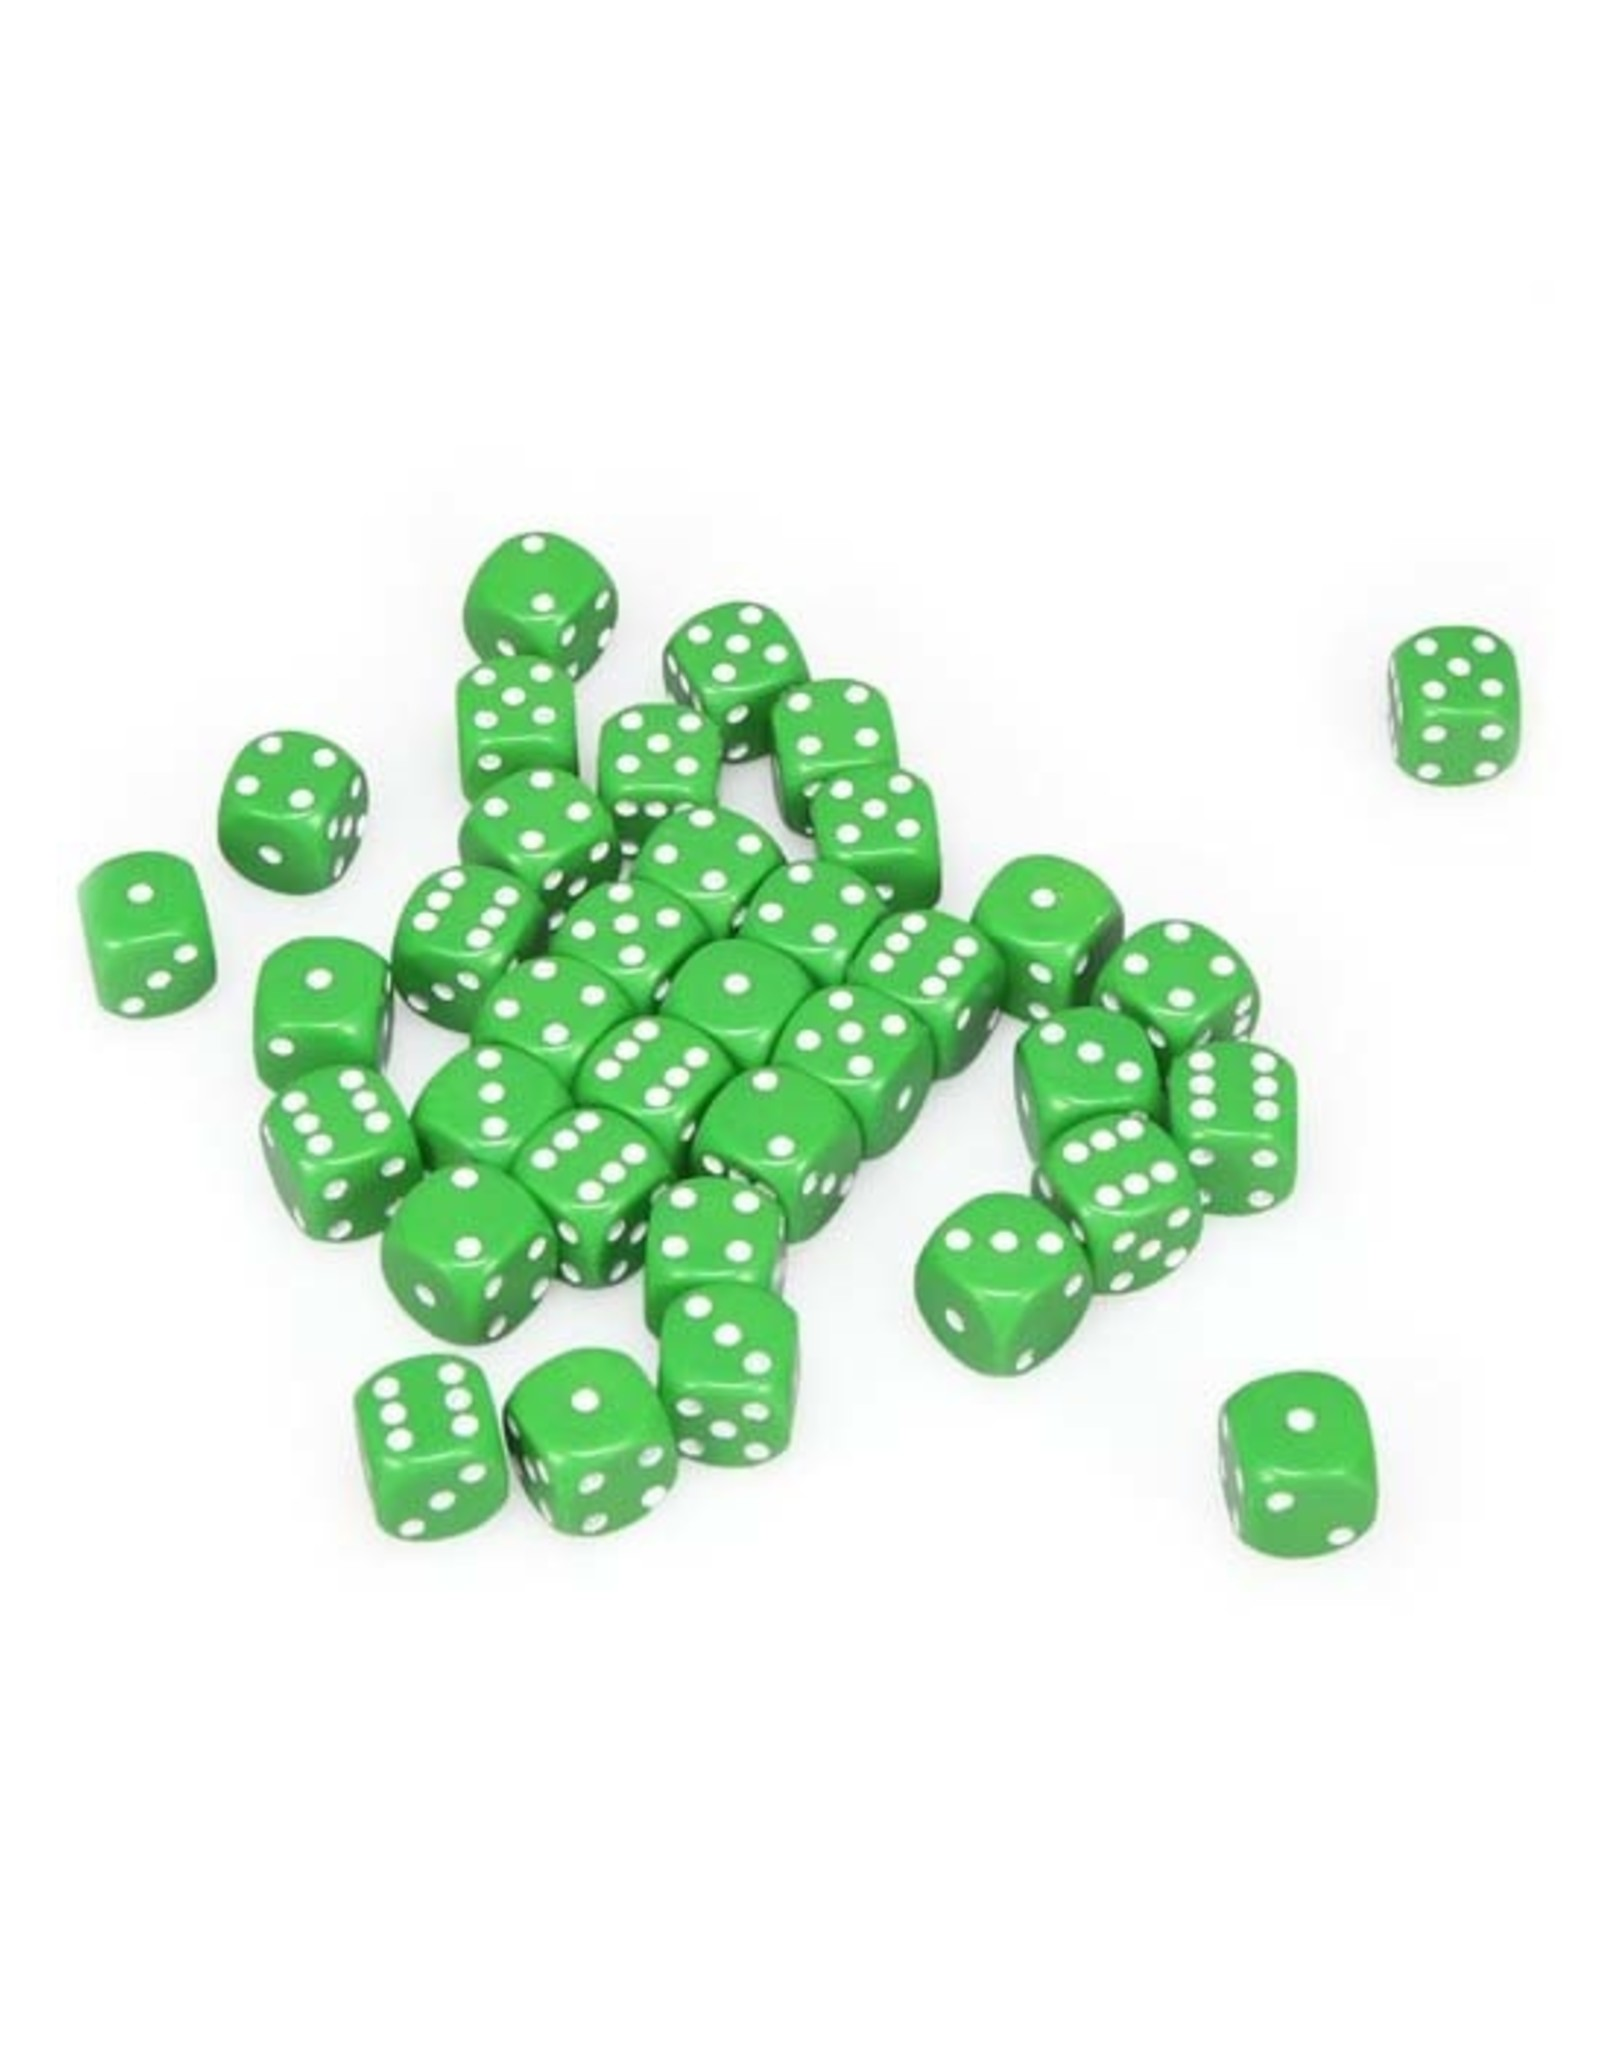 Chessex Chessex: 12mm D6 - Opaque - Green w/ White